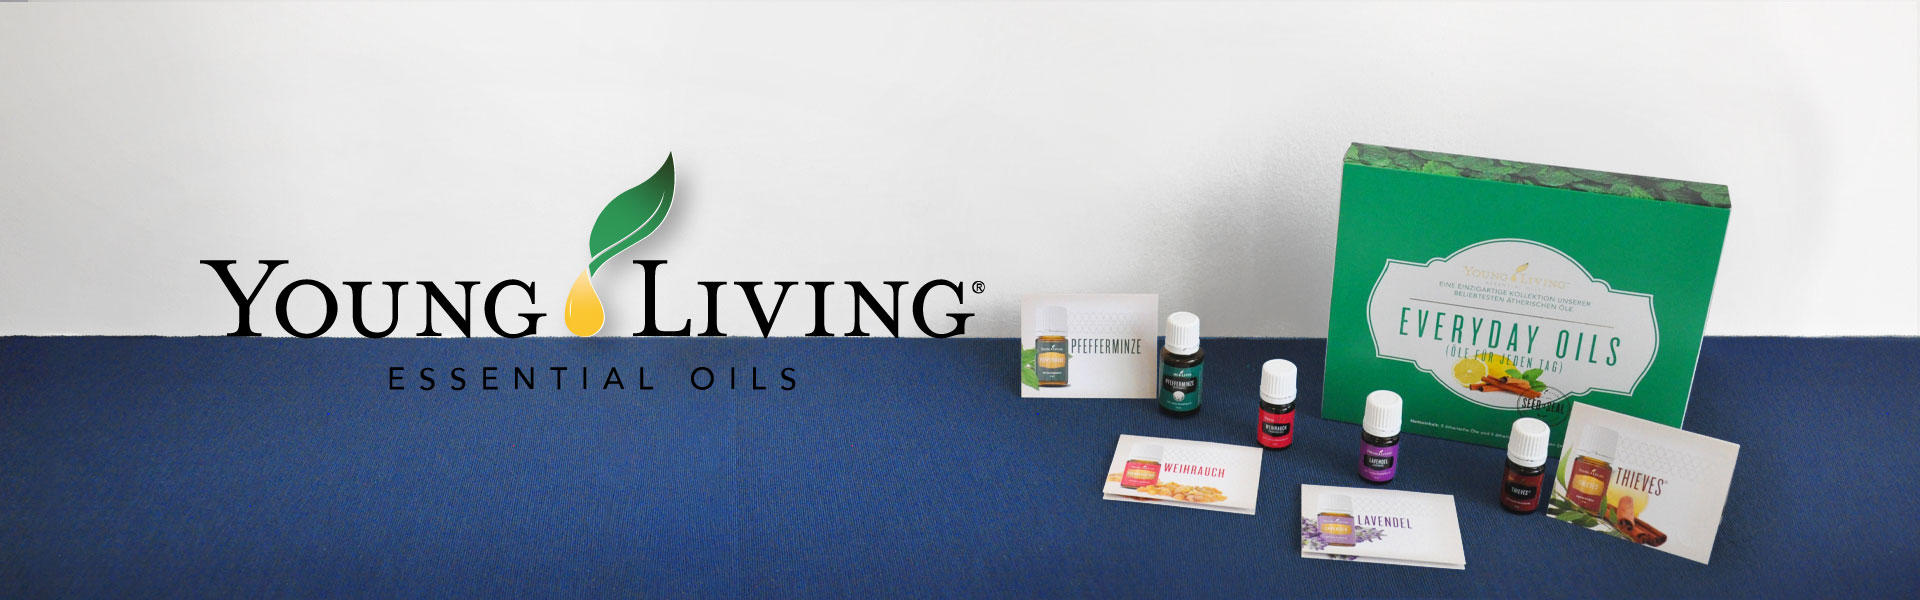 Young Living header